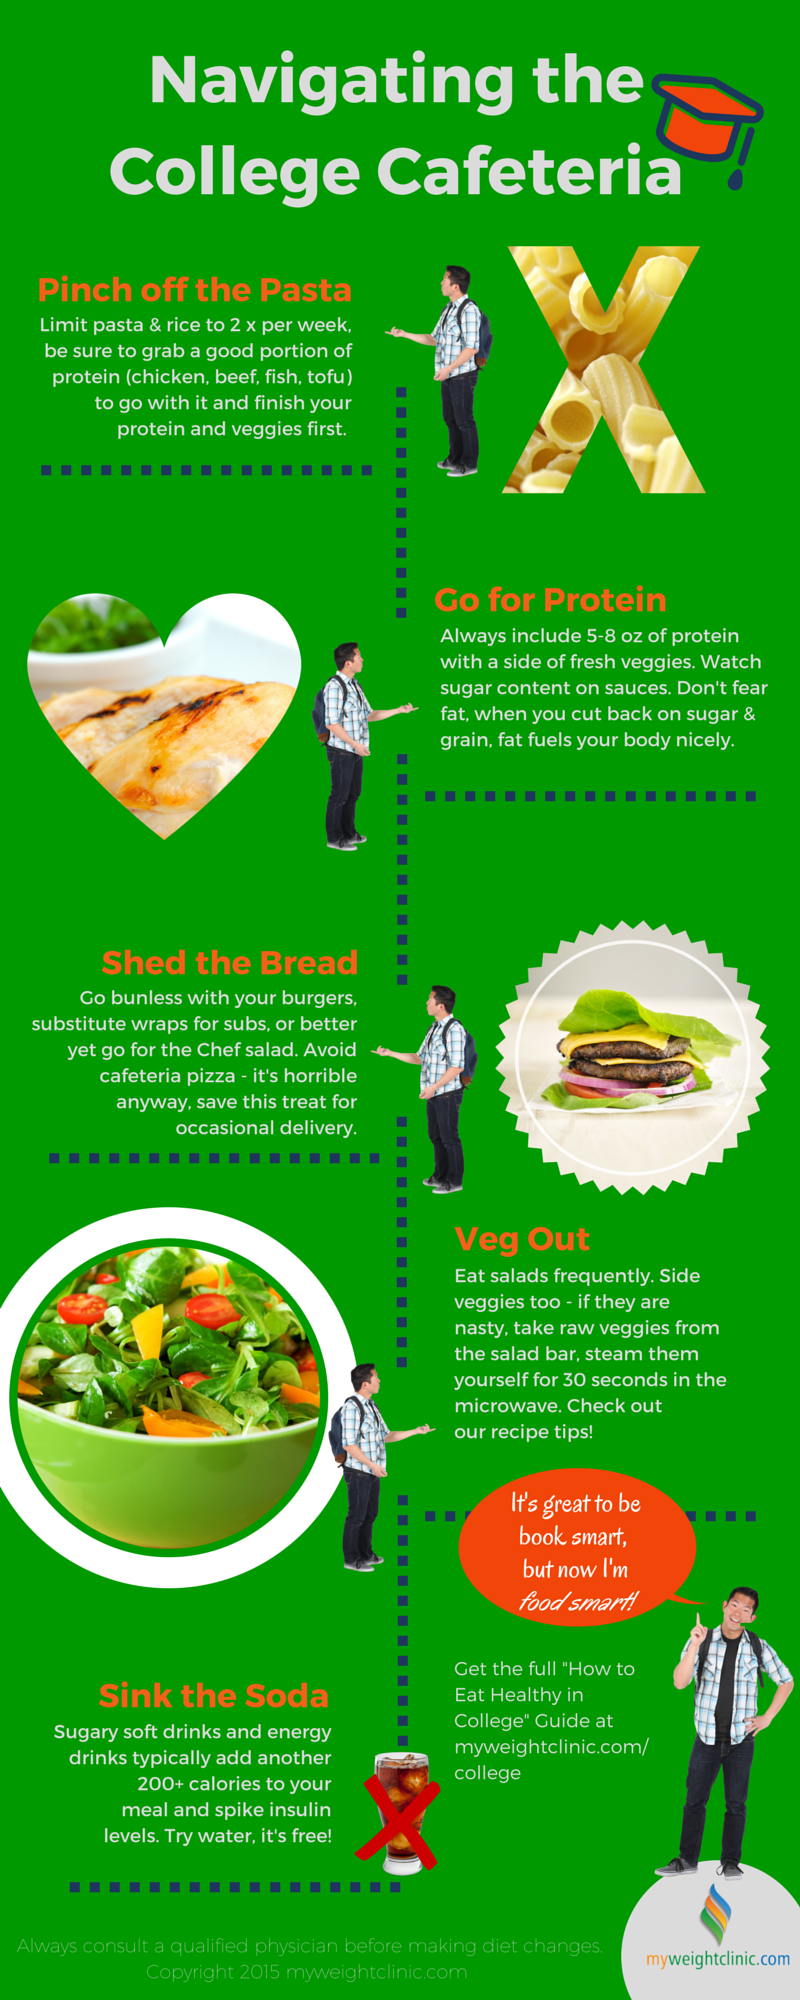 How To Eat Healthy In College 33 tips PDF  navigating the cafeteria infographic  Weight Loss Solutions Orlando Gainesville Deland Ocala Jacksonville Florida